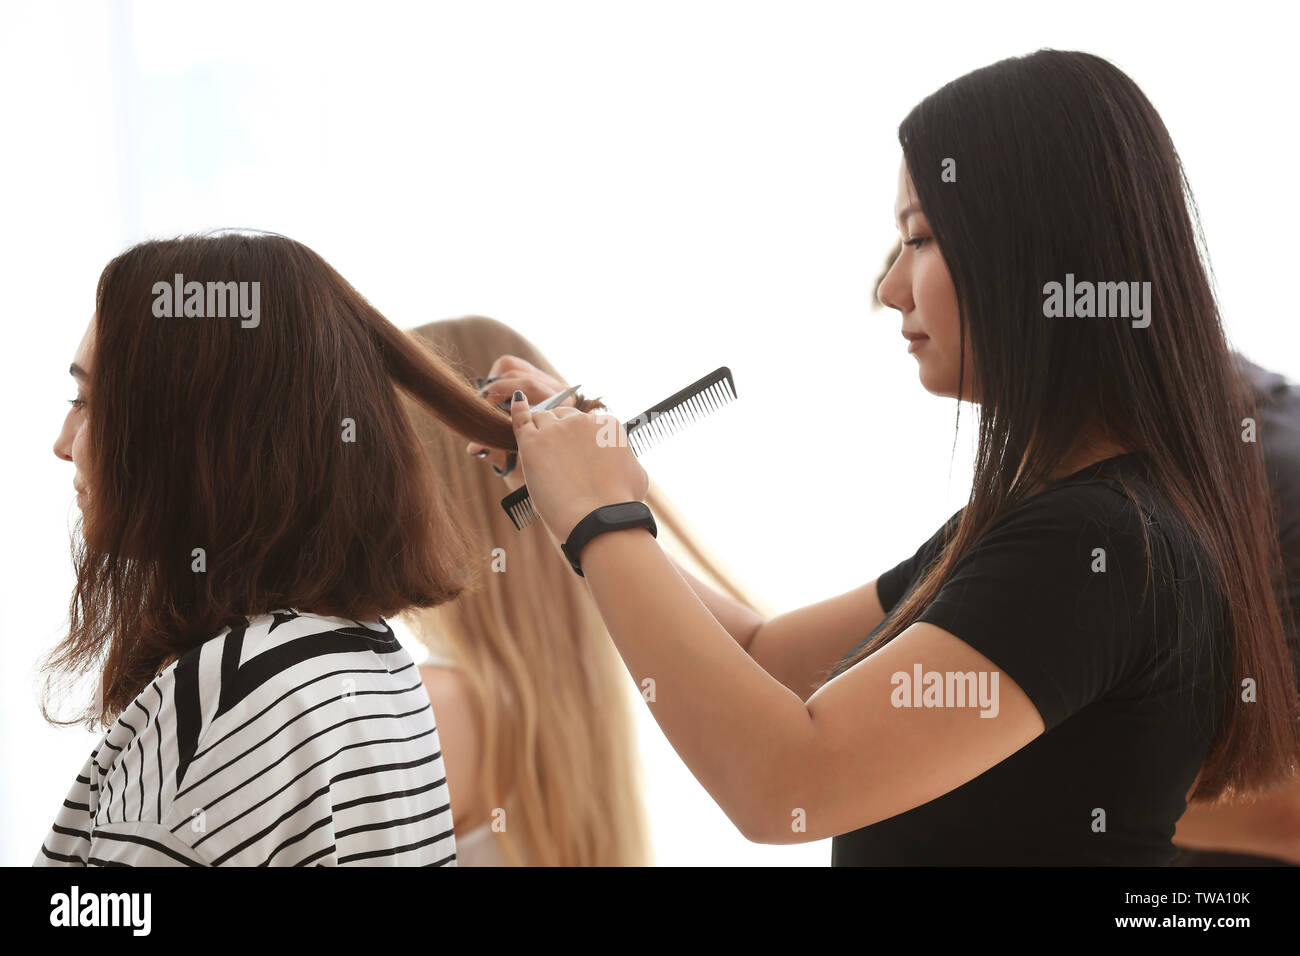 Page 12 - Hairdresser Apprentice High Resolution Stock Photography